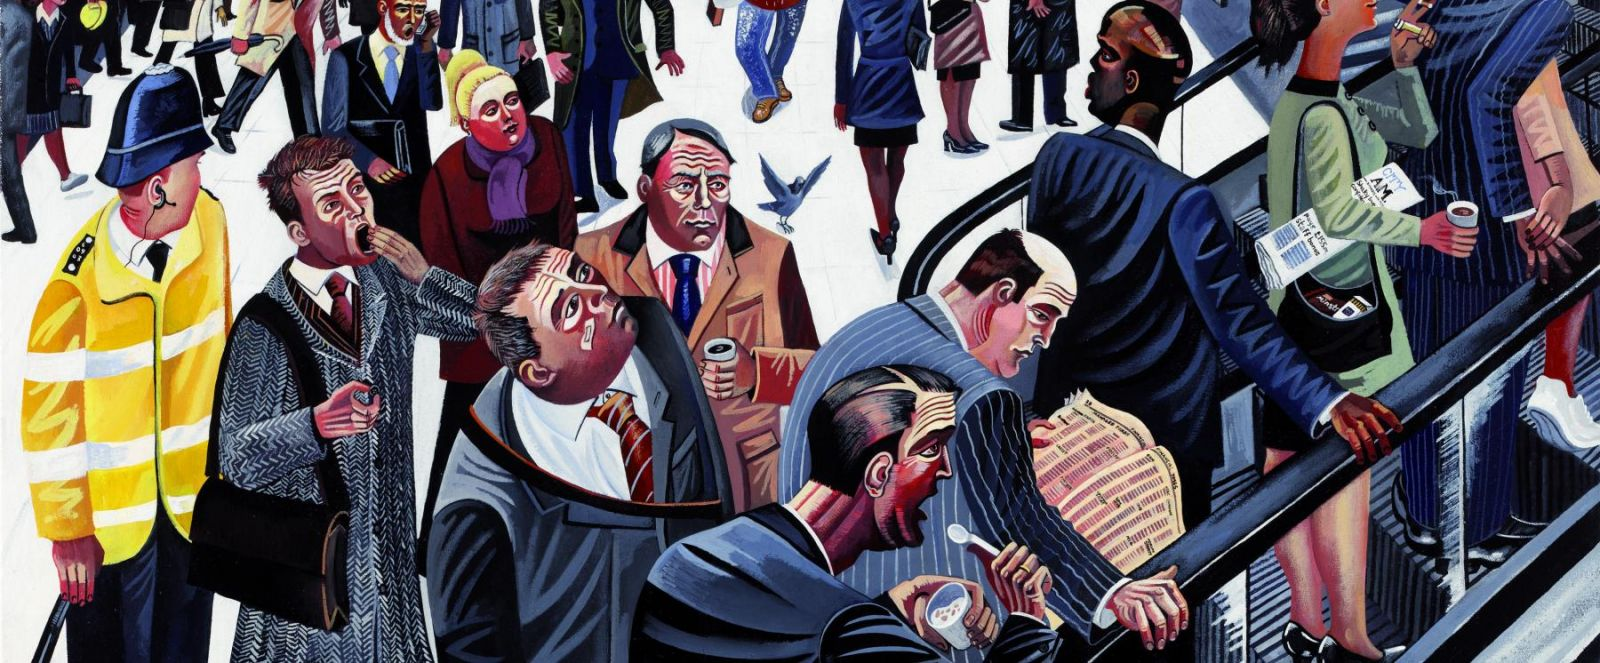 Ed Gray Art Paintings of City Life​